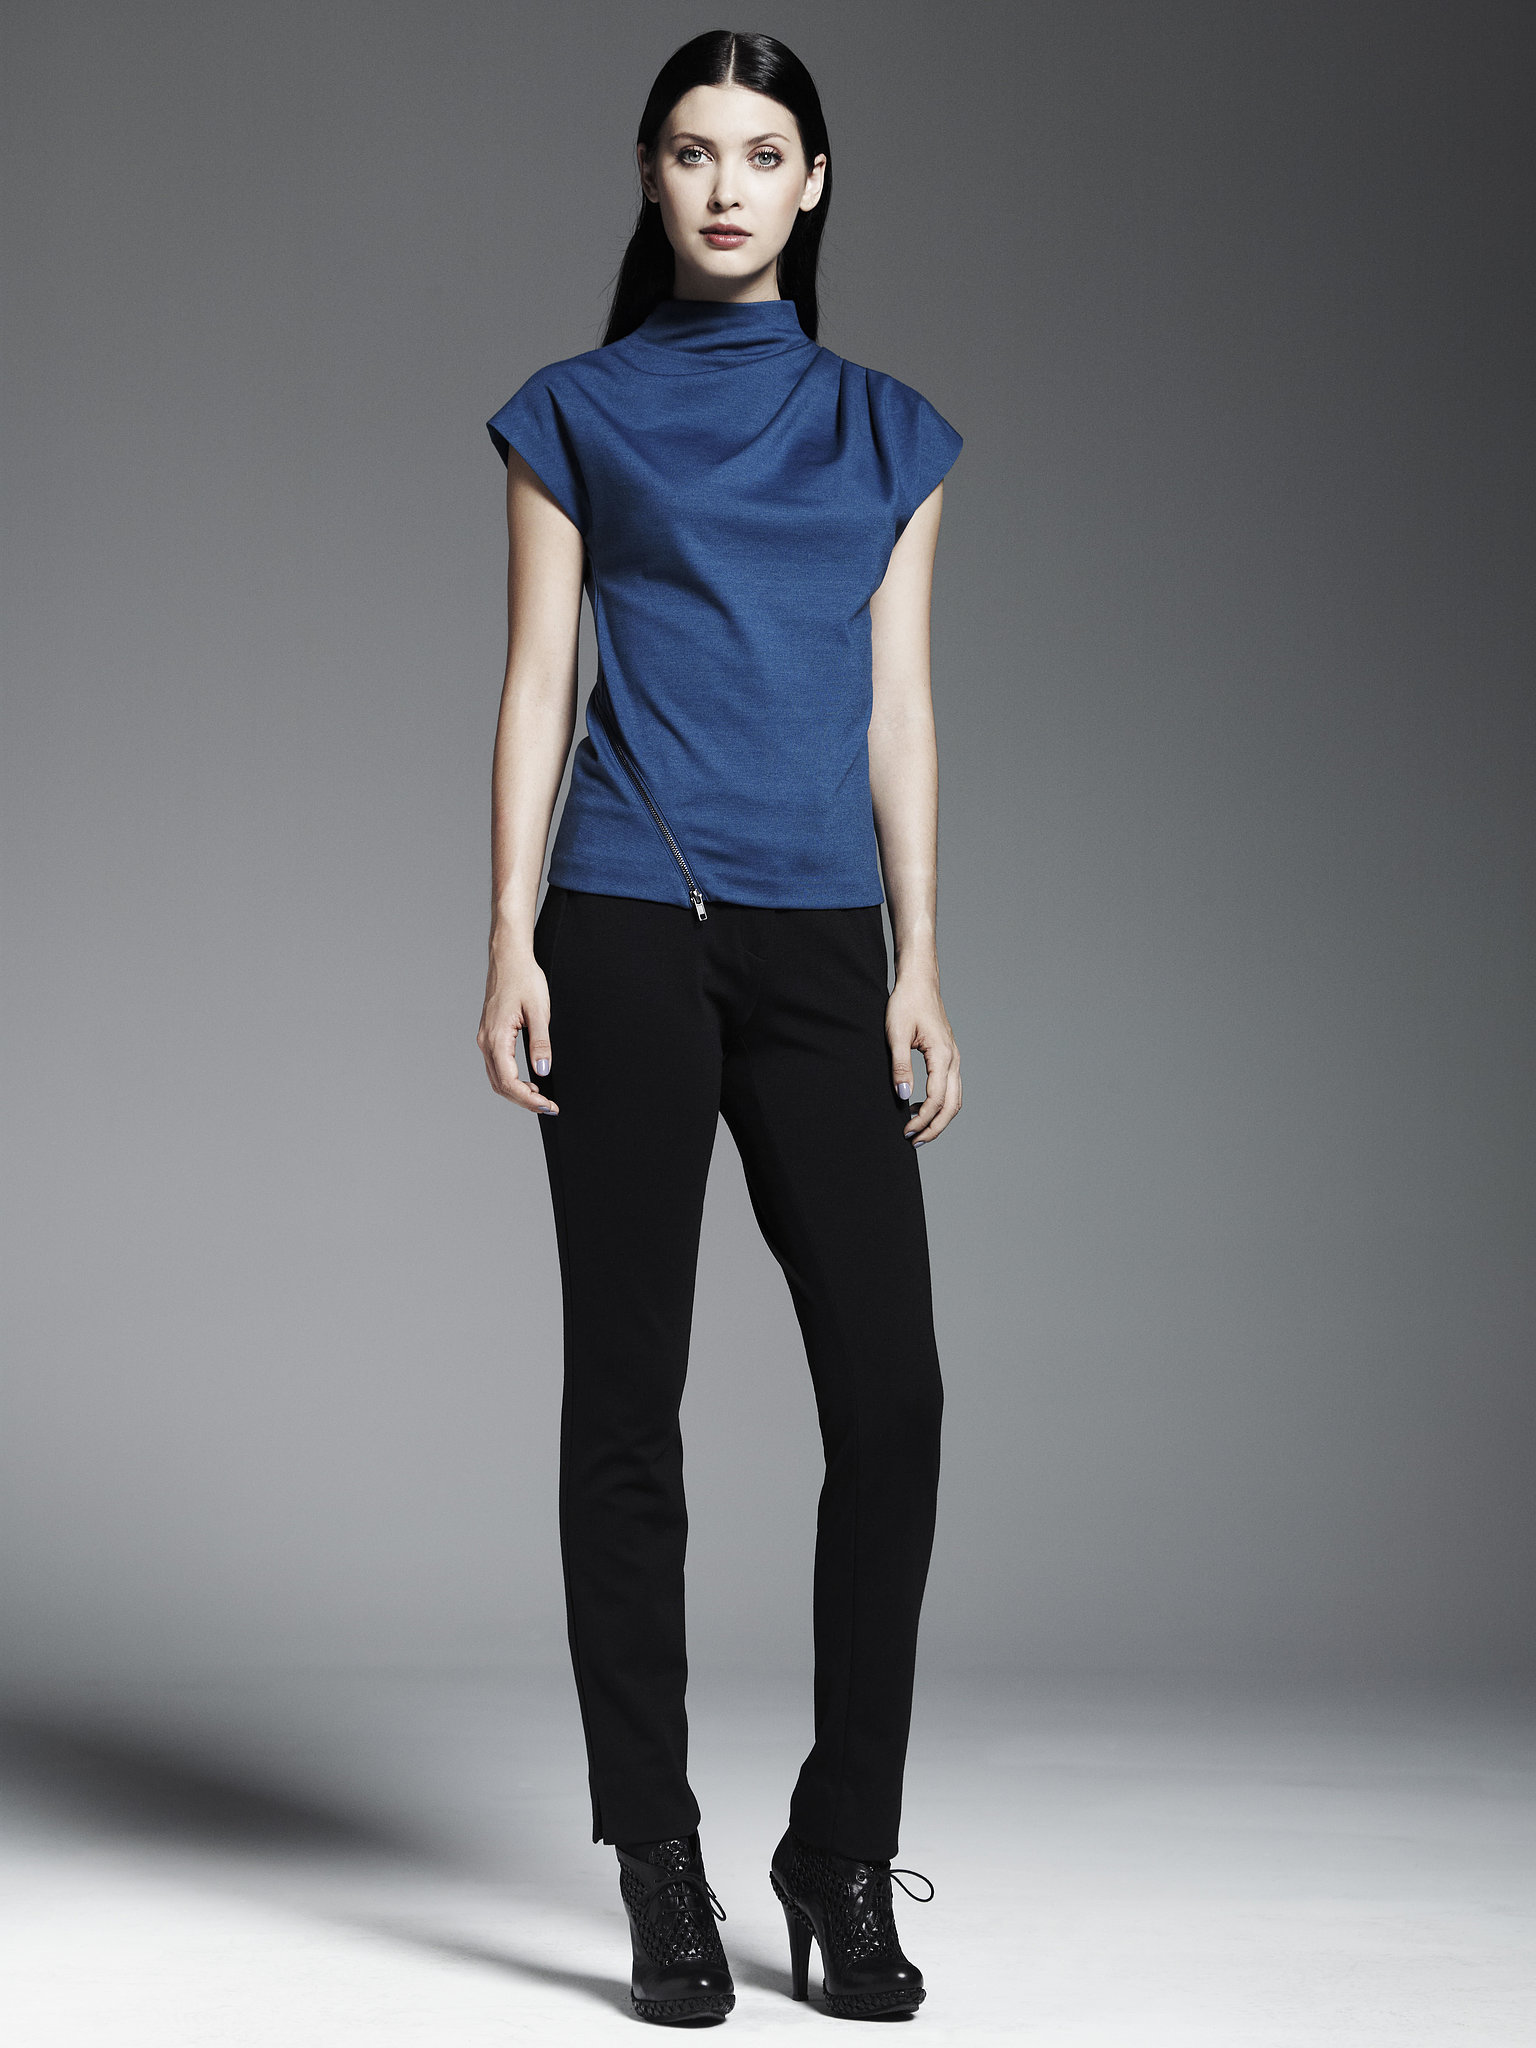 Ponte Side-Zip Top ($48), Ponte Pants ($54) Photo courtes